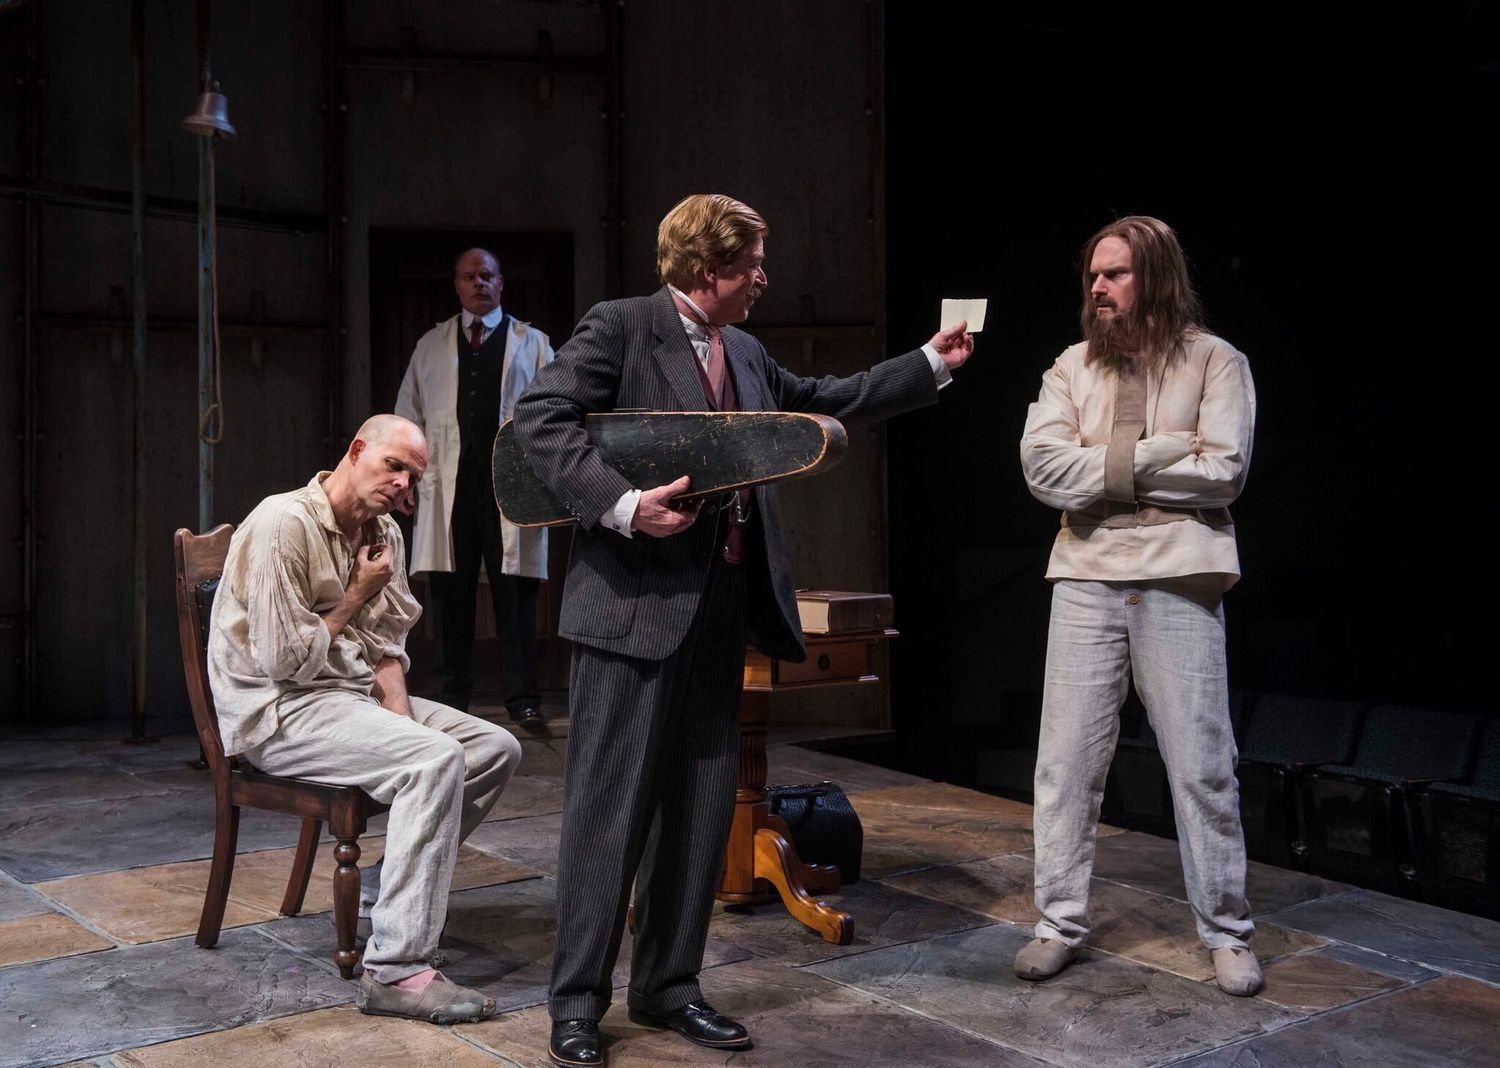 BWW Review: The Heart-Pounding HOLMES & WATSON Brings Murder-Mystery Drama to the Milwaukee Repertory Theater